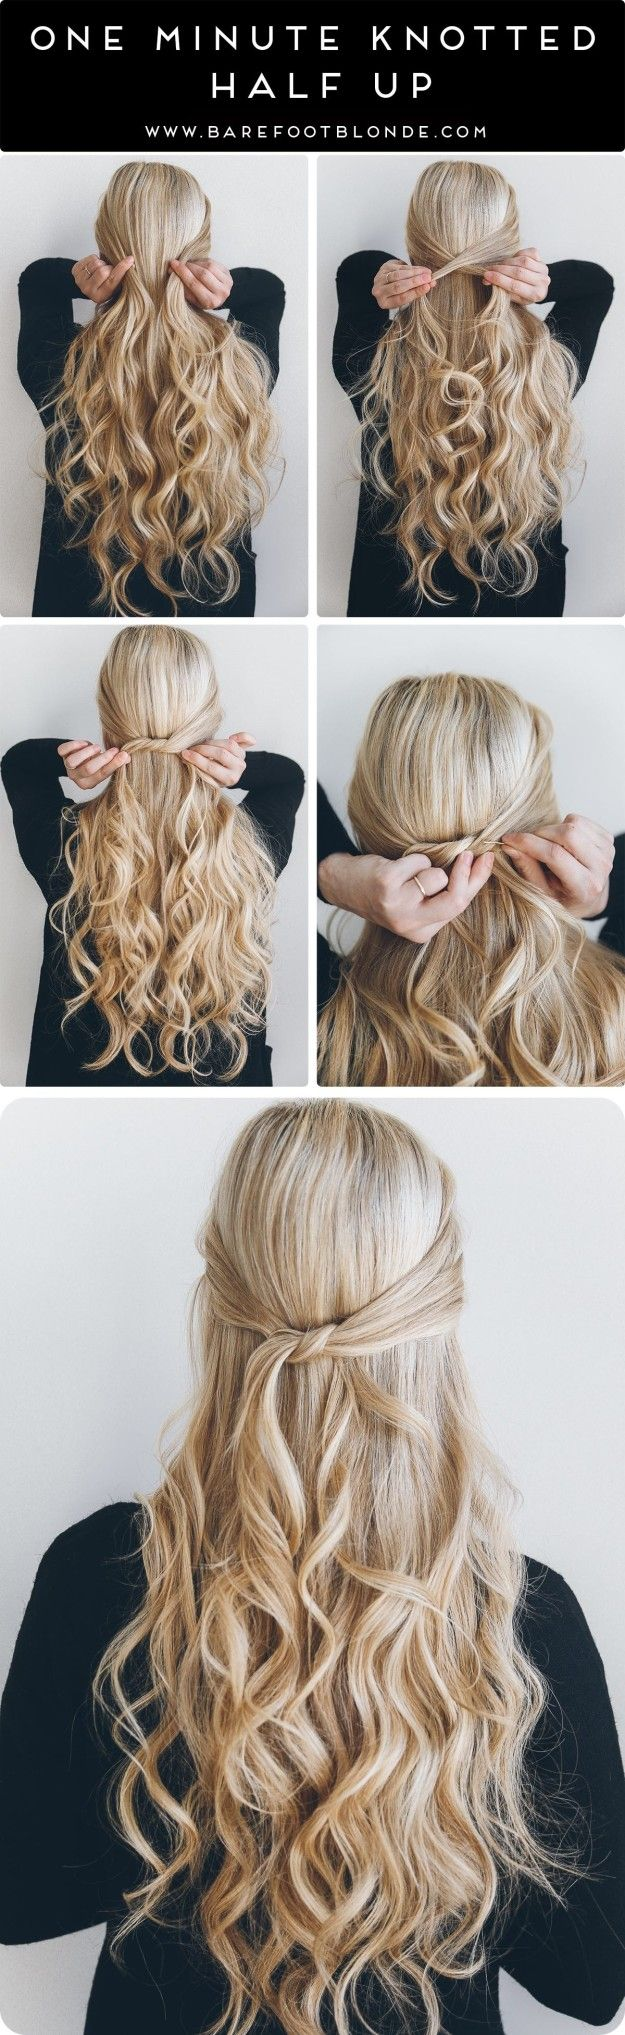 Try a halfup hairstyle with a twist thatus knot difficult at all